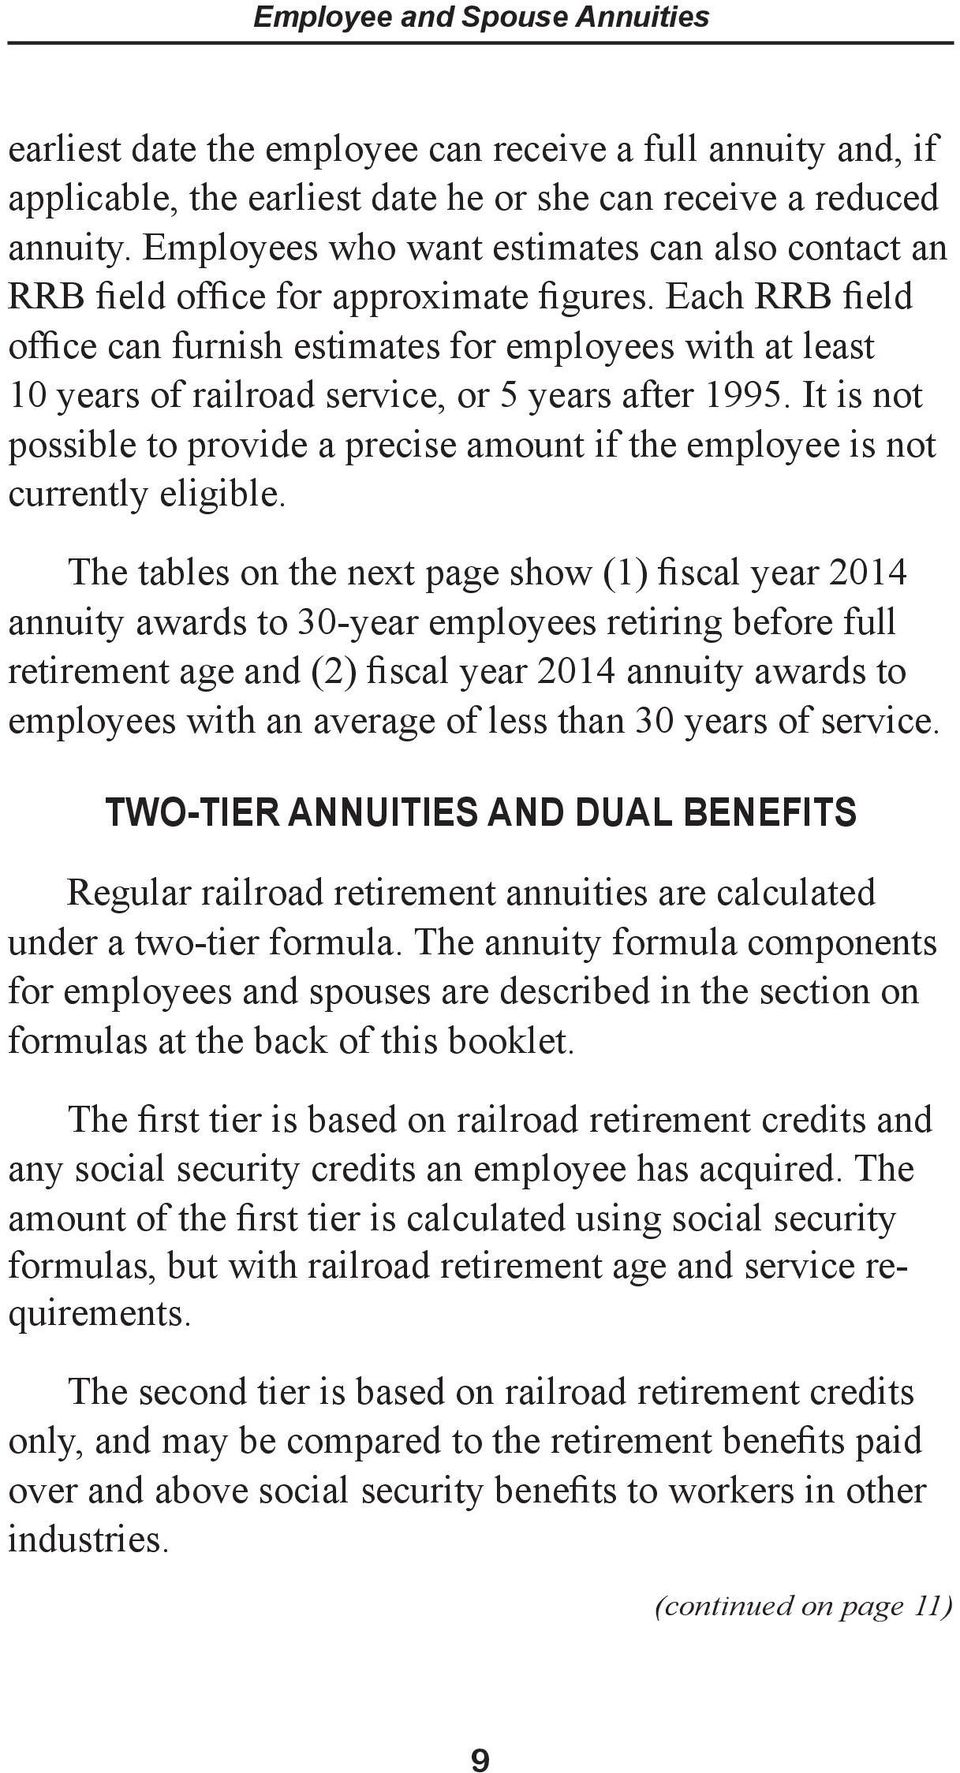 Each RRB field office can furnish estimates for employees with at least 10 years of railroad service, or 5 years after 1995.